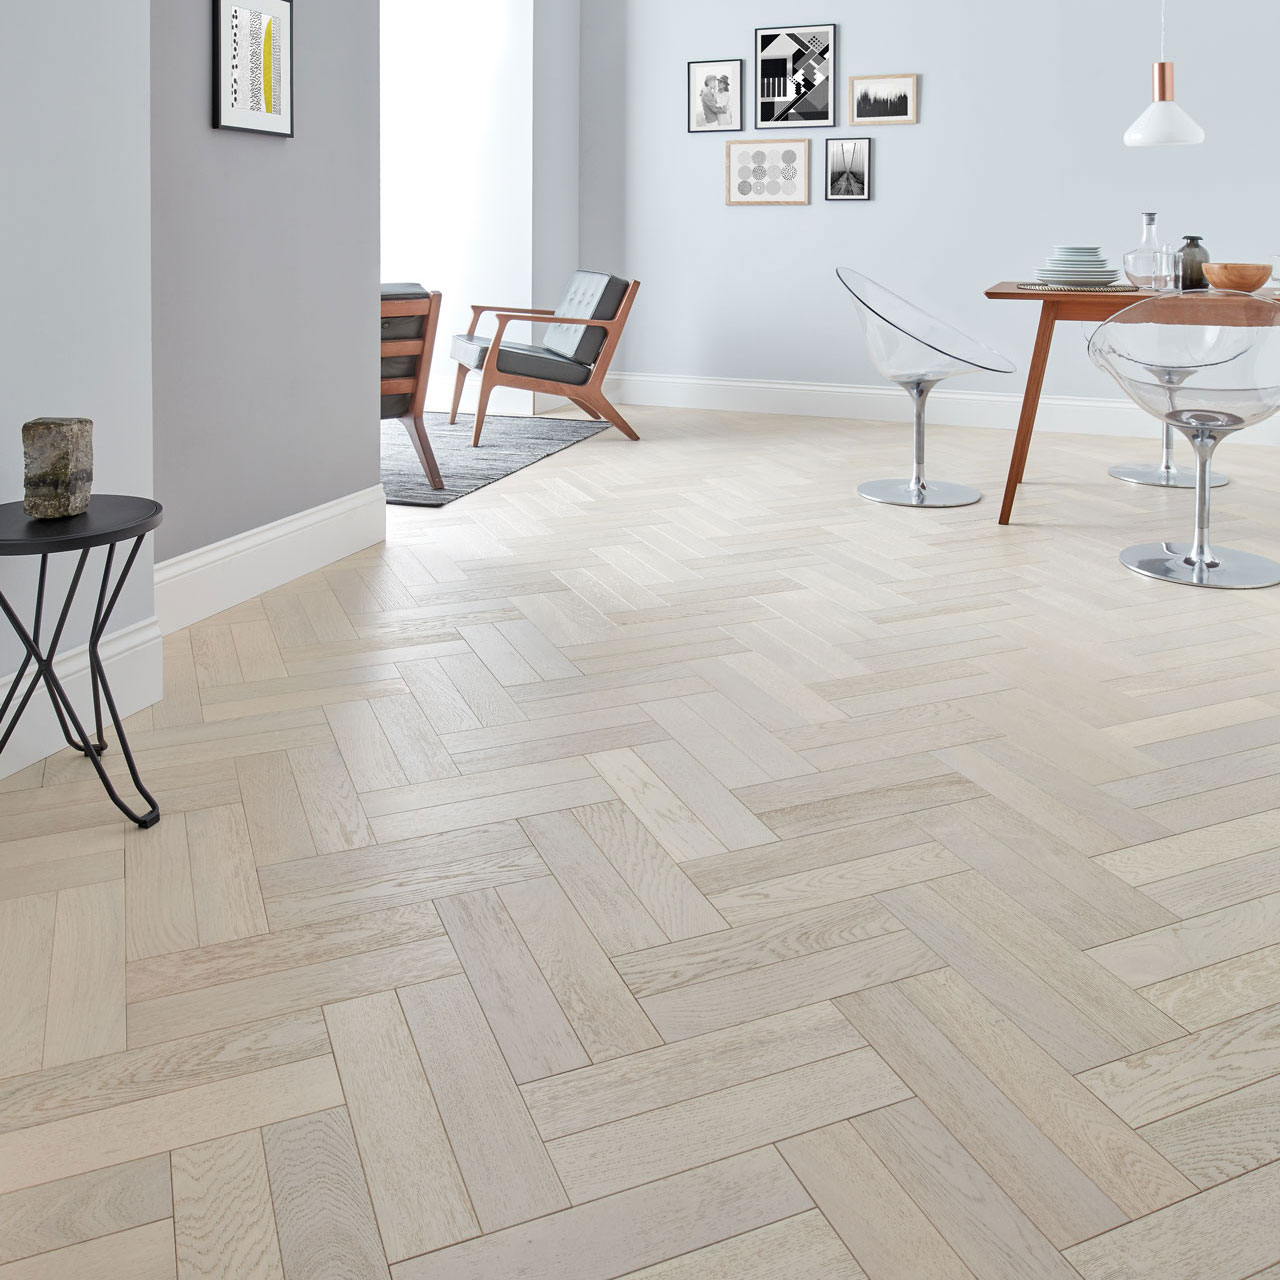 Goodrich whitened oak parquet flooring woodpecker flooring for Flooring products